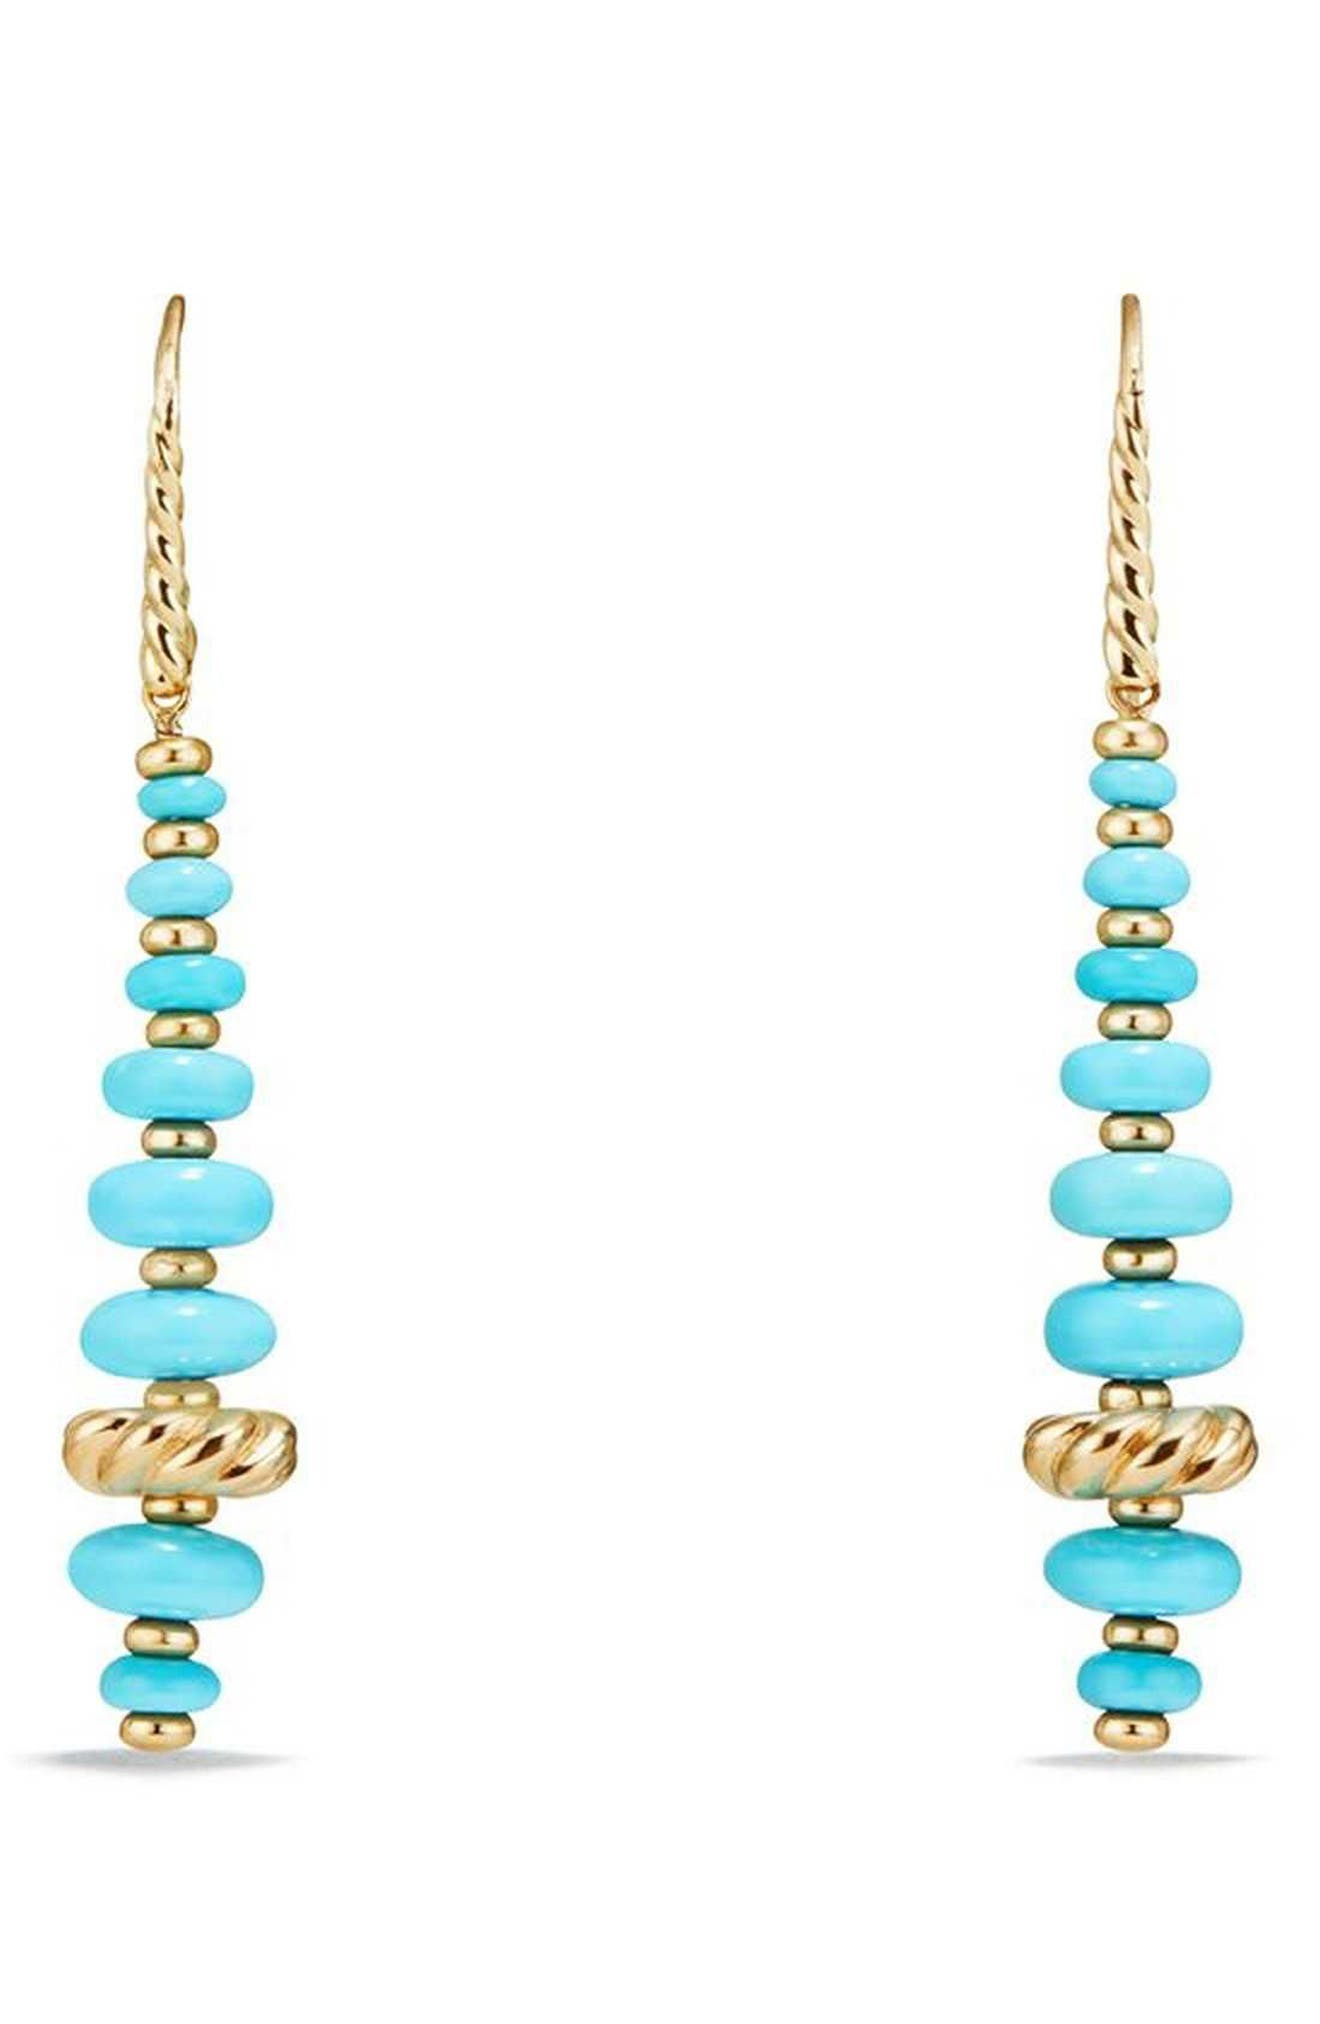 Rio Rondelle Drop Earrings in 18K Gold,                             Main thumbnail 1, color,                             Gold/ Turquoise